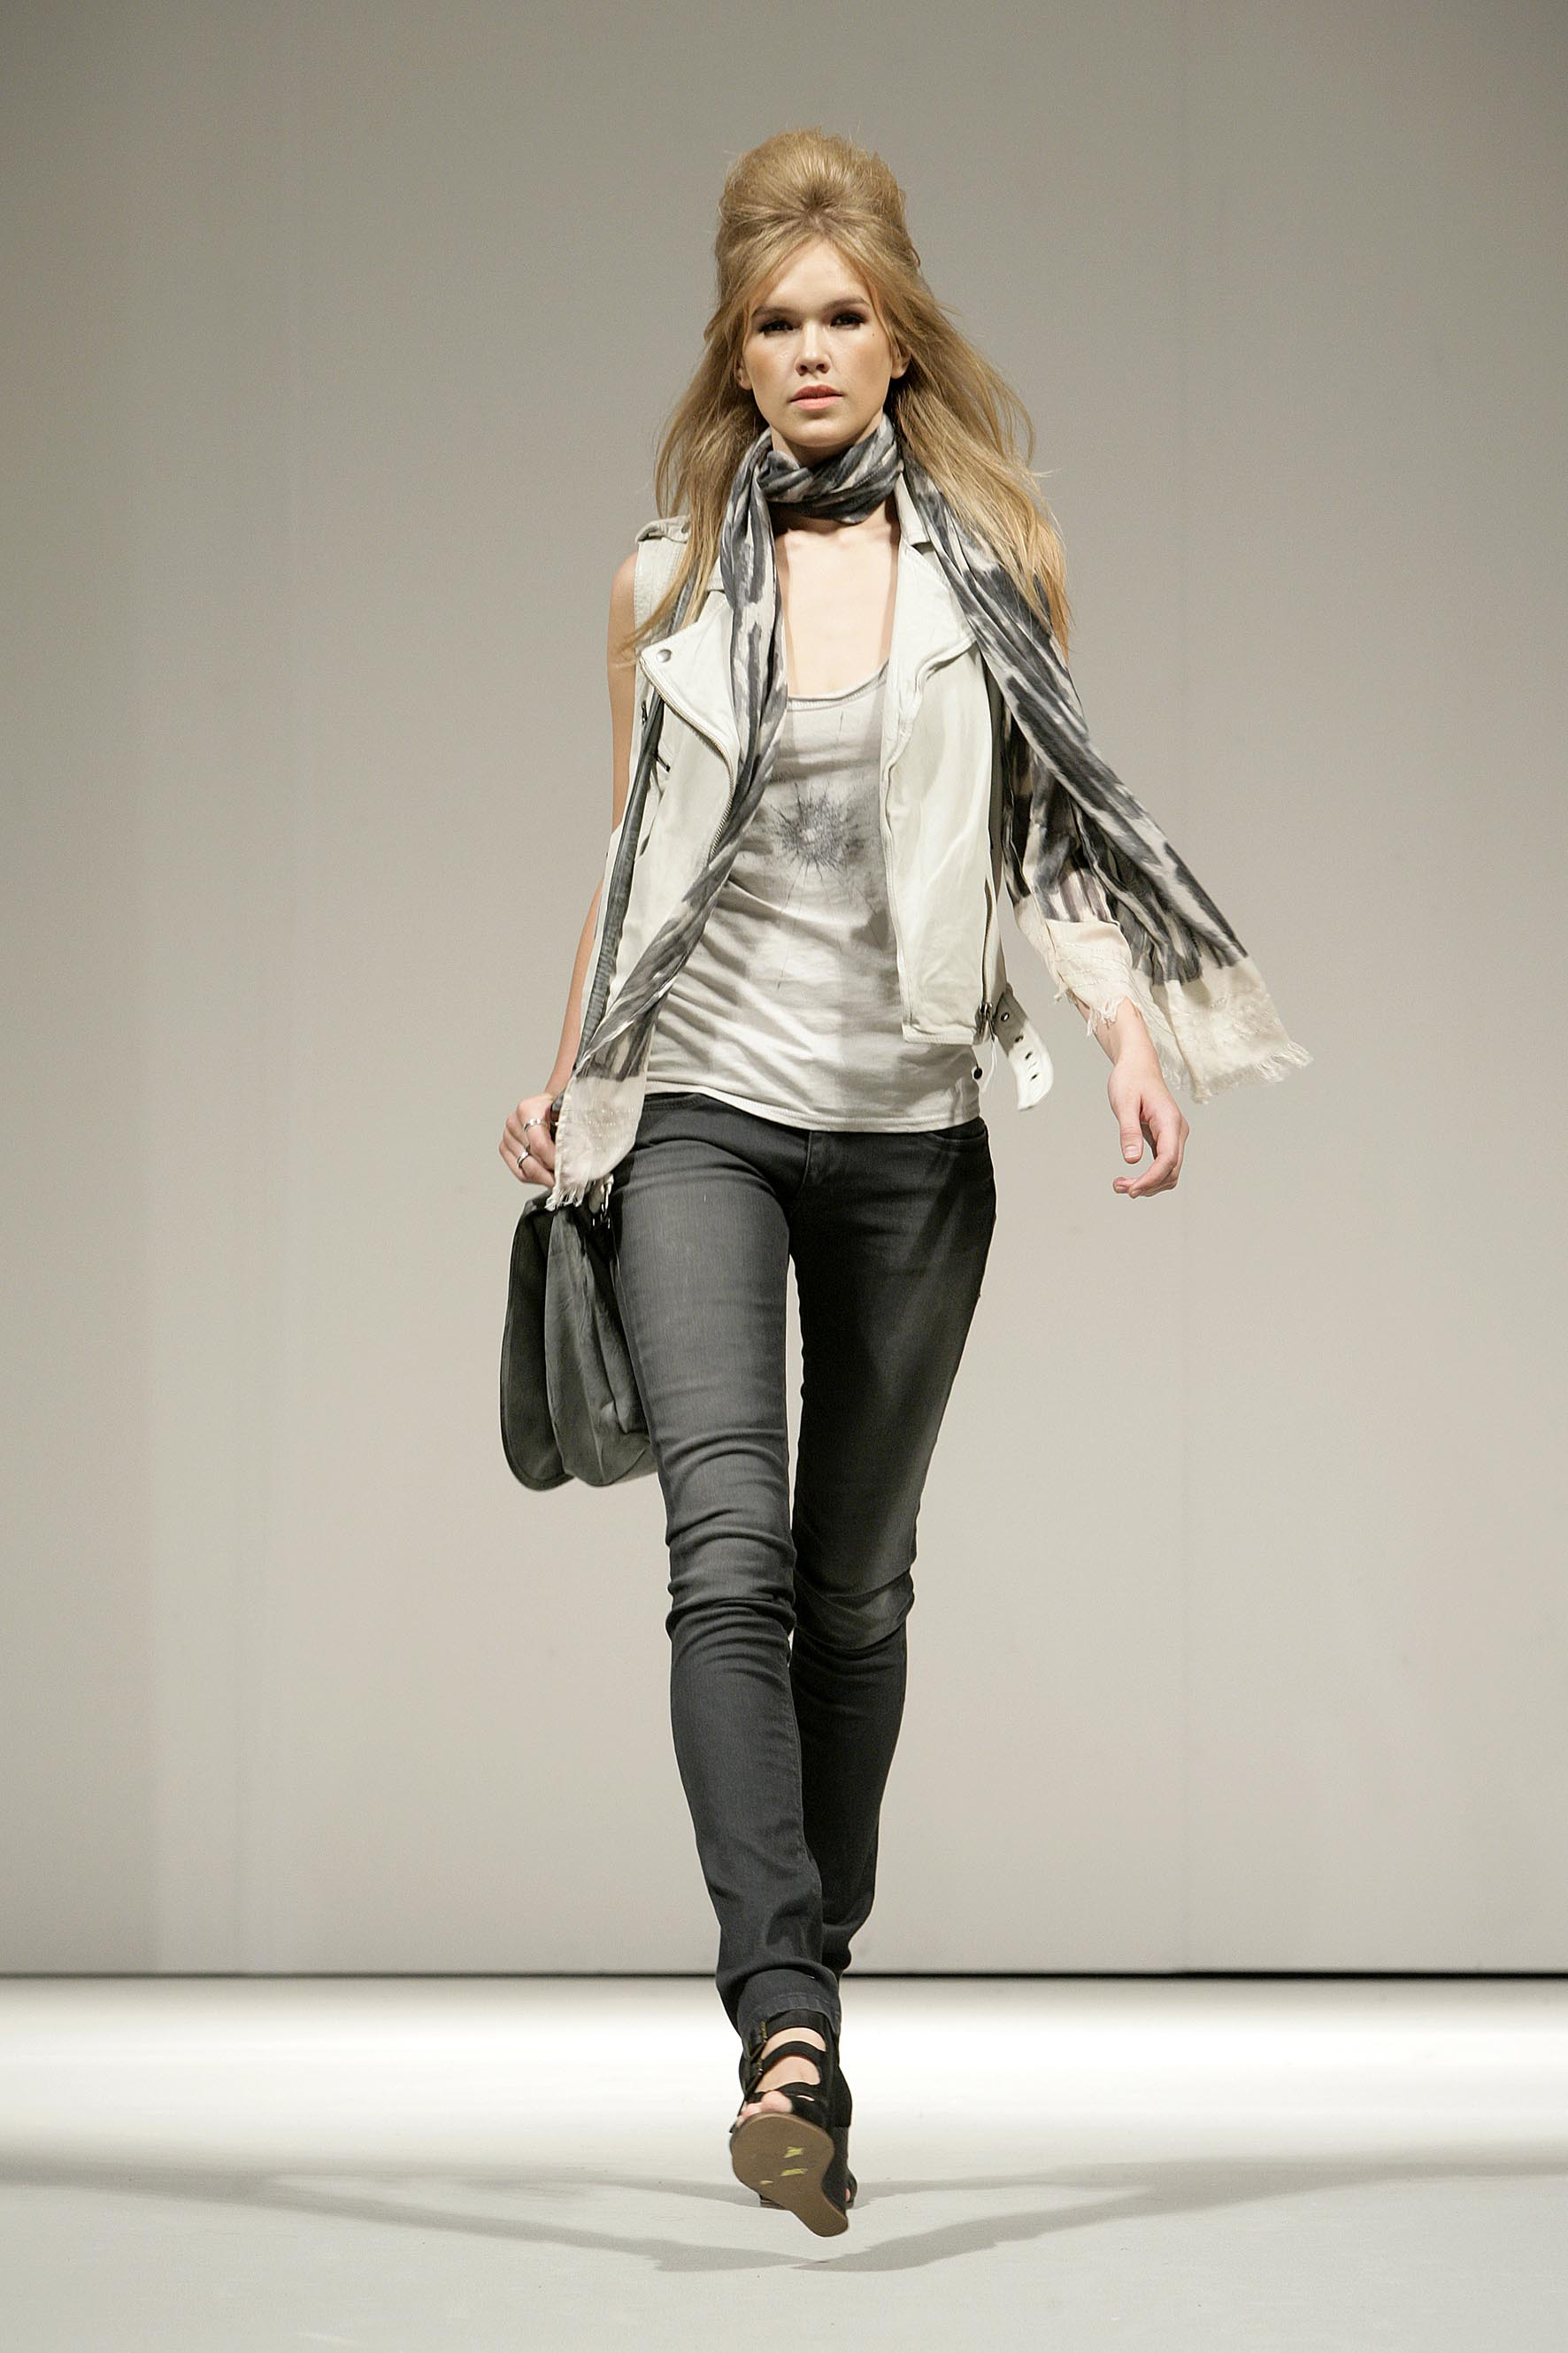 Pepe Jeans London Un Look Rock Chic Per L Estate 2012